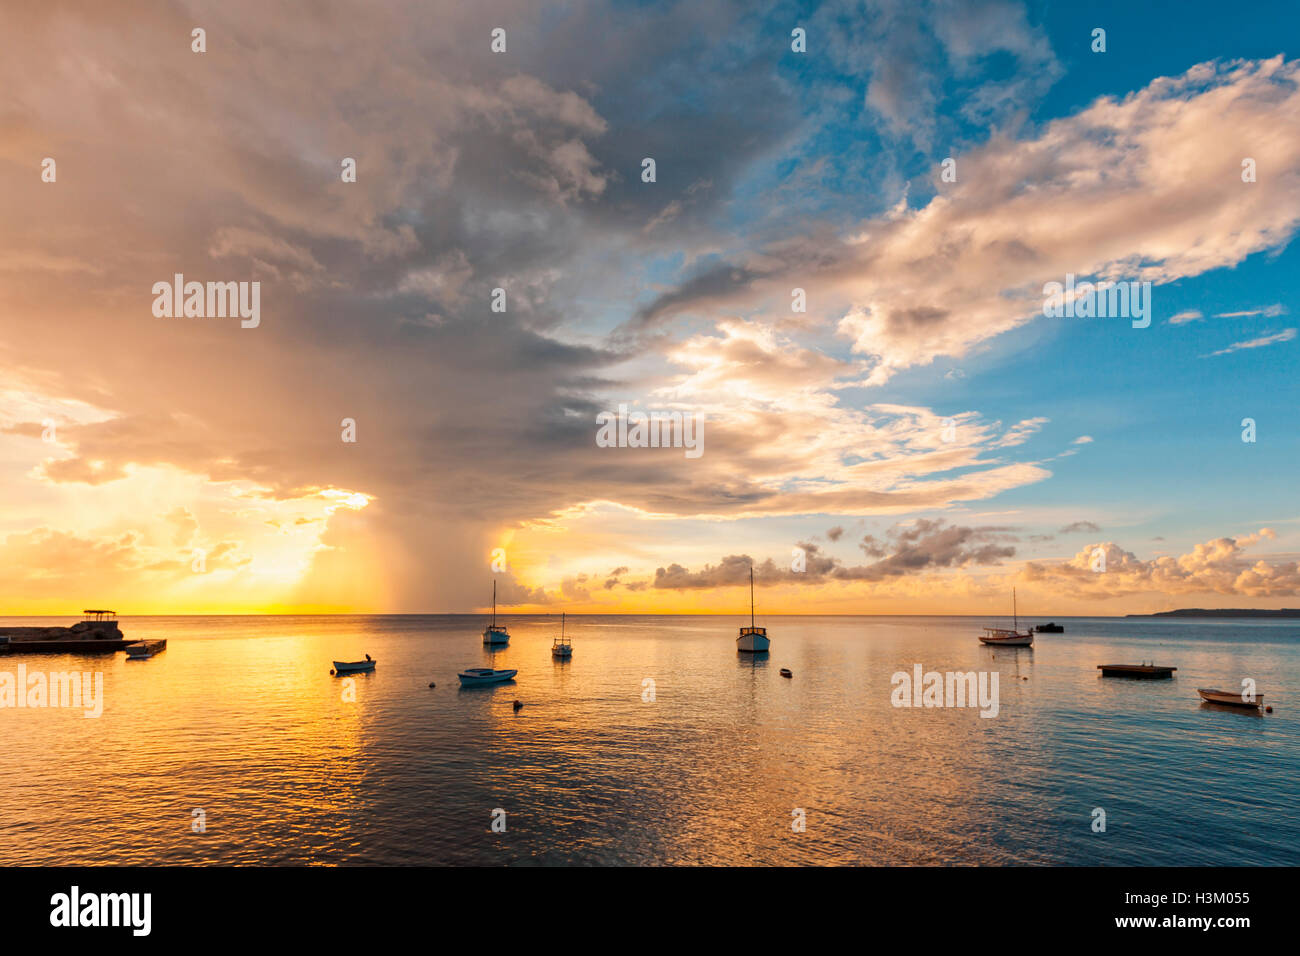 Impressing sunset at Fort St. Michiel beach, Curacao - Stock Image